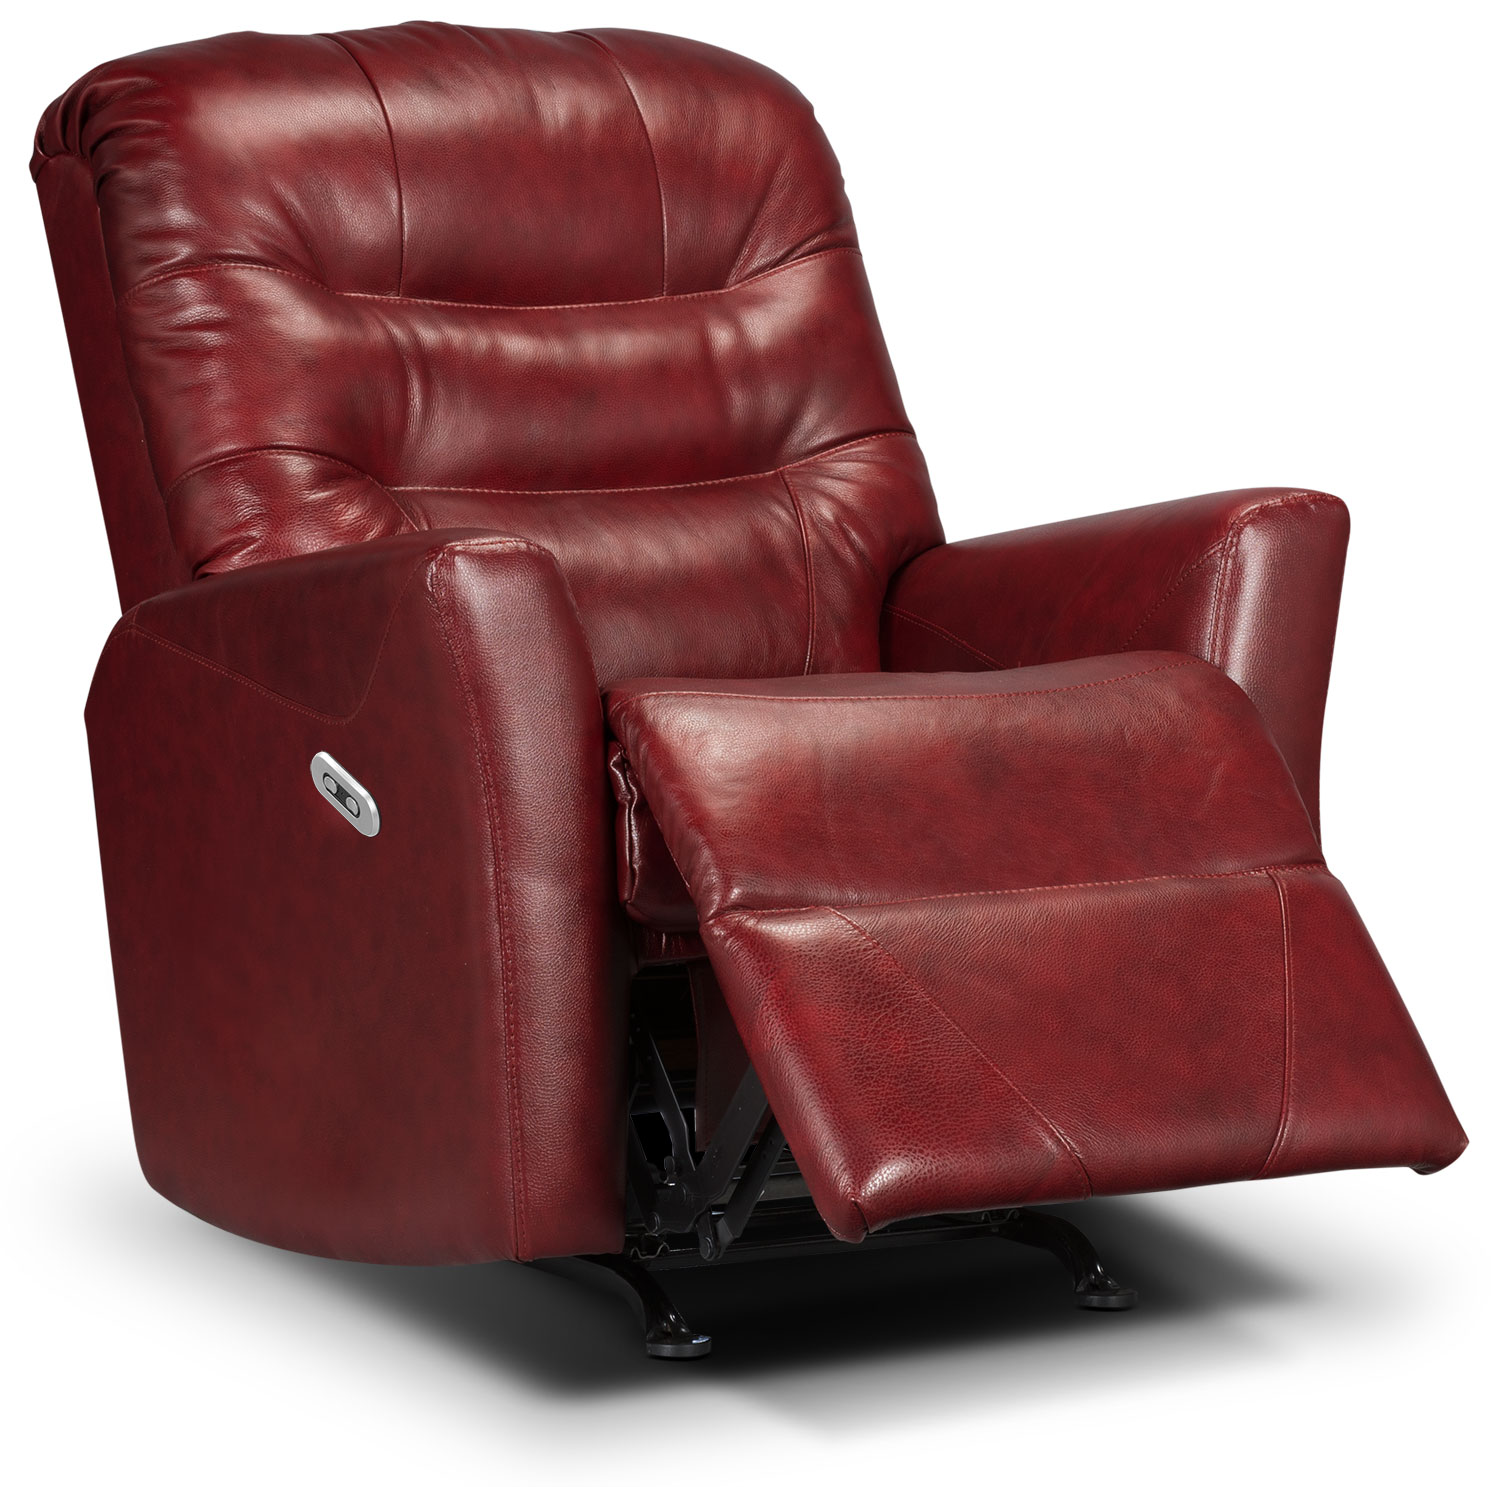 Living Room Furniture - Designed2B Recliner 4560 Genuine Leather Power Recliner - Paprika